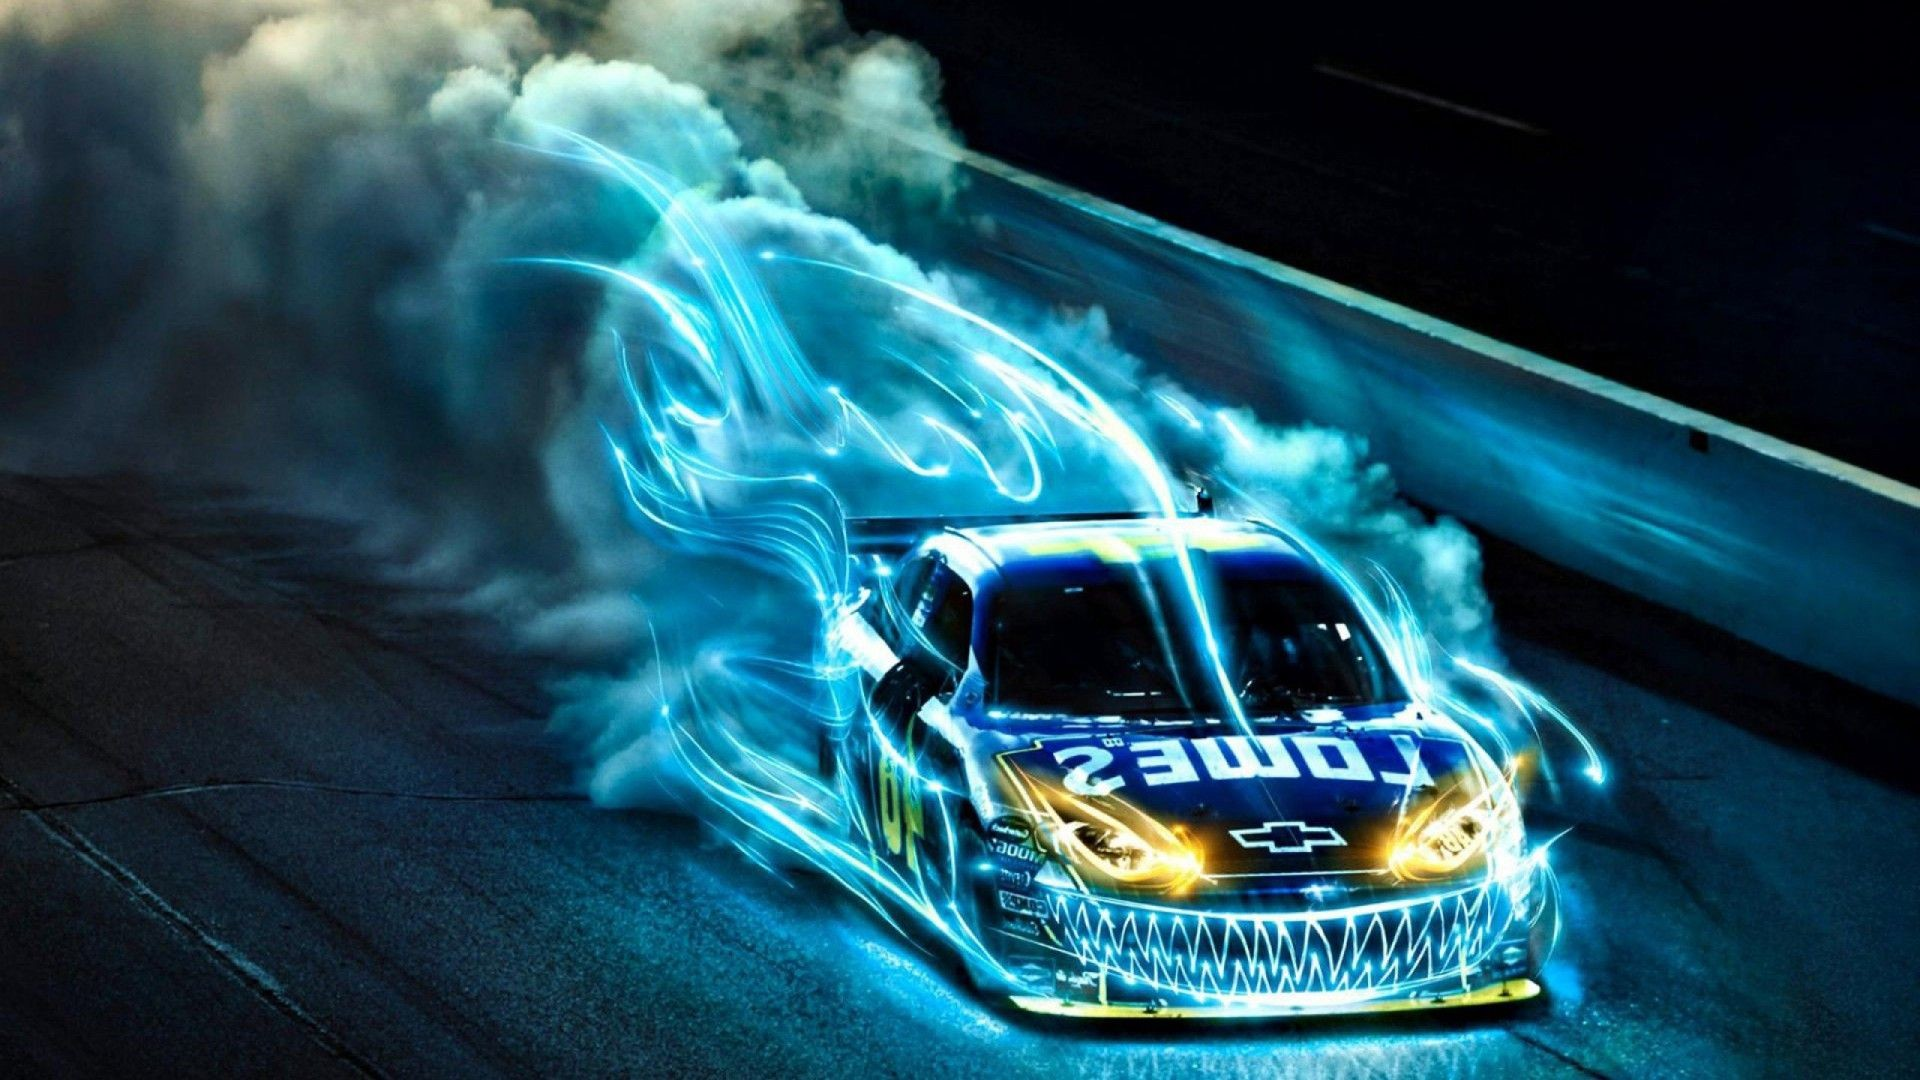 Res: 1920x1080, Amazing Graphic Design Wallpaper | Amazing Drag Racing | Wallpapers Design